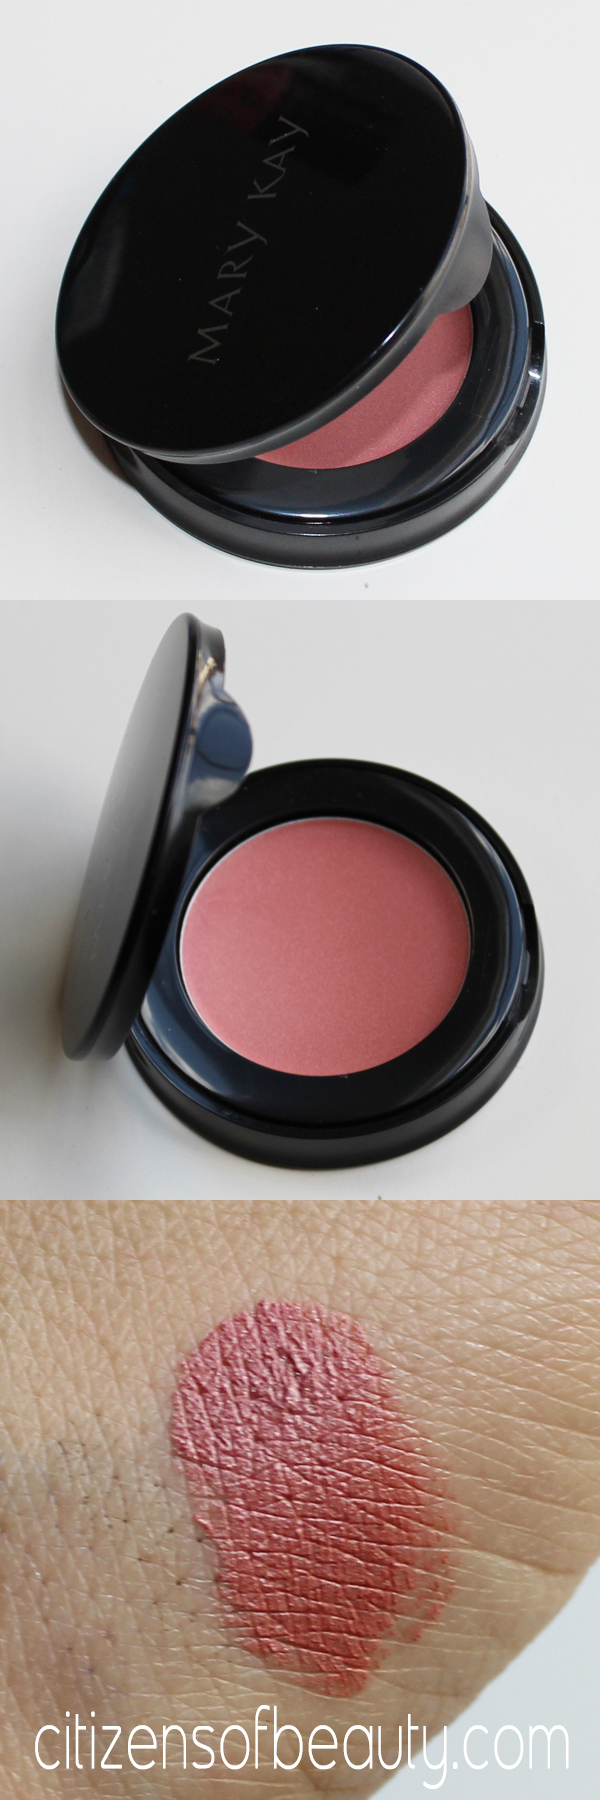 sheer_bliss_mary_kay_cream_blush